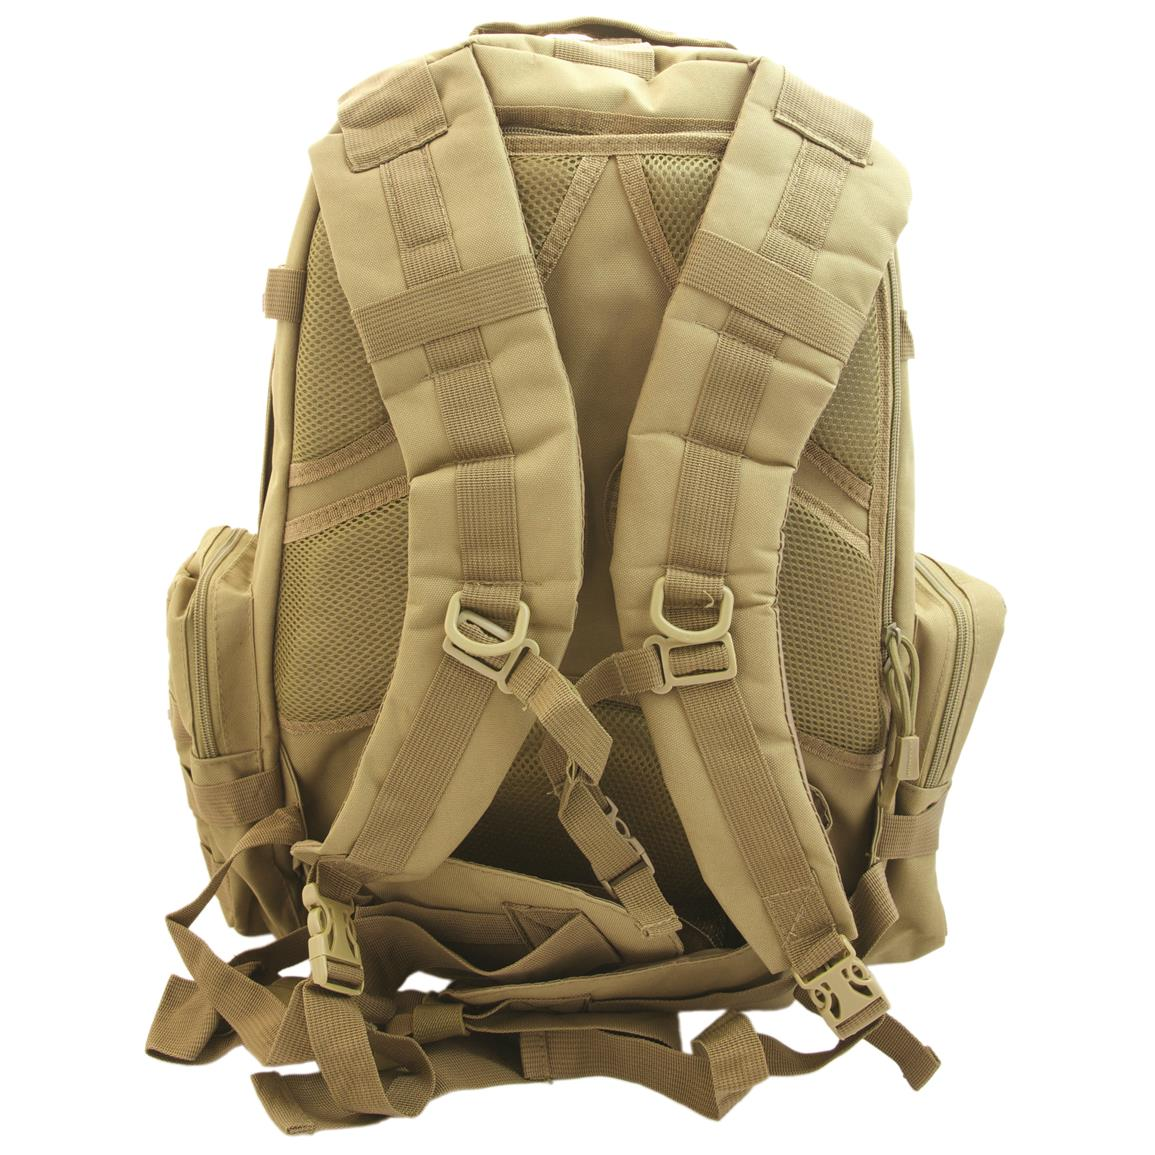 Humvee 3-Day Assault Backpack, Tan, Back